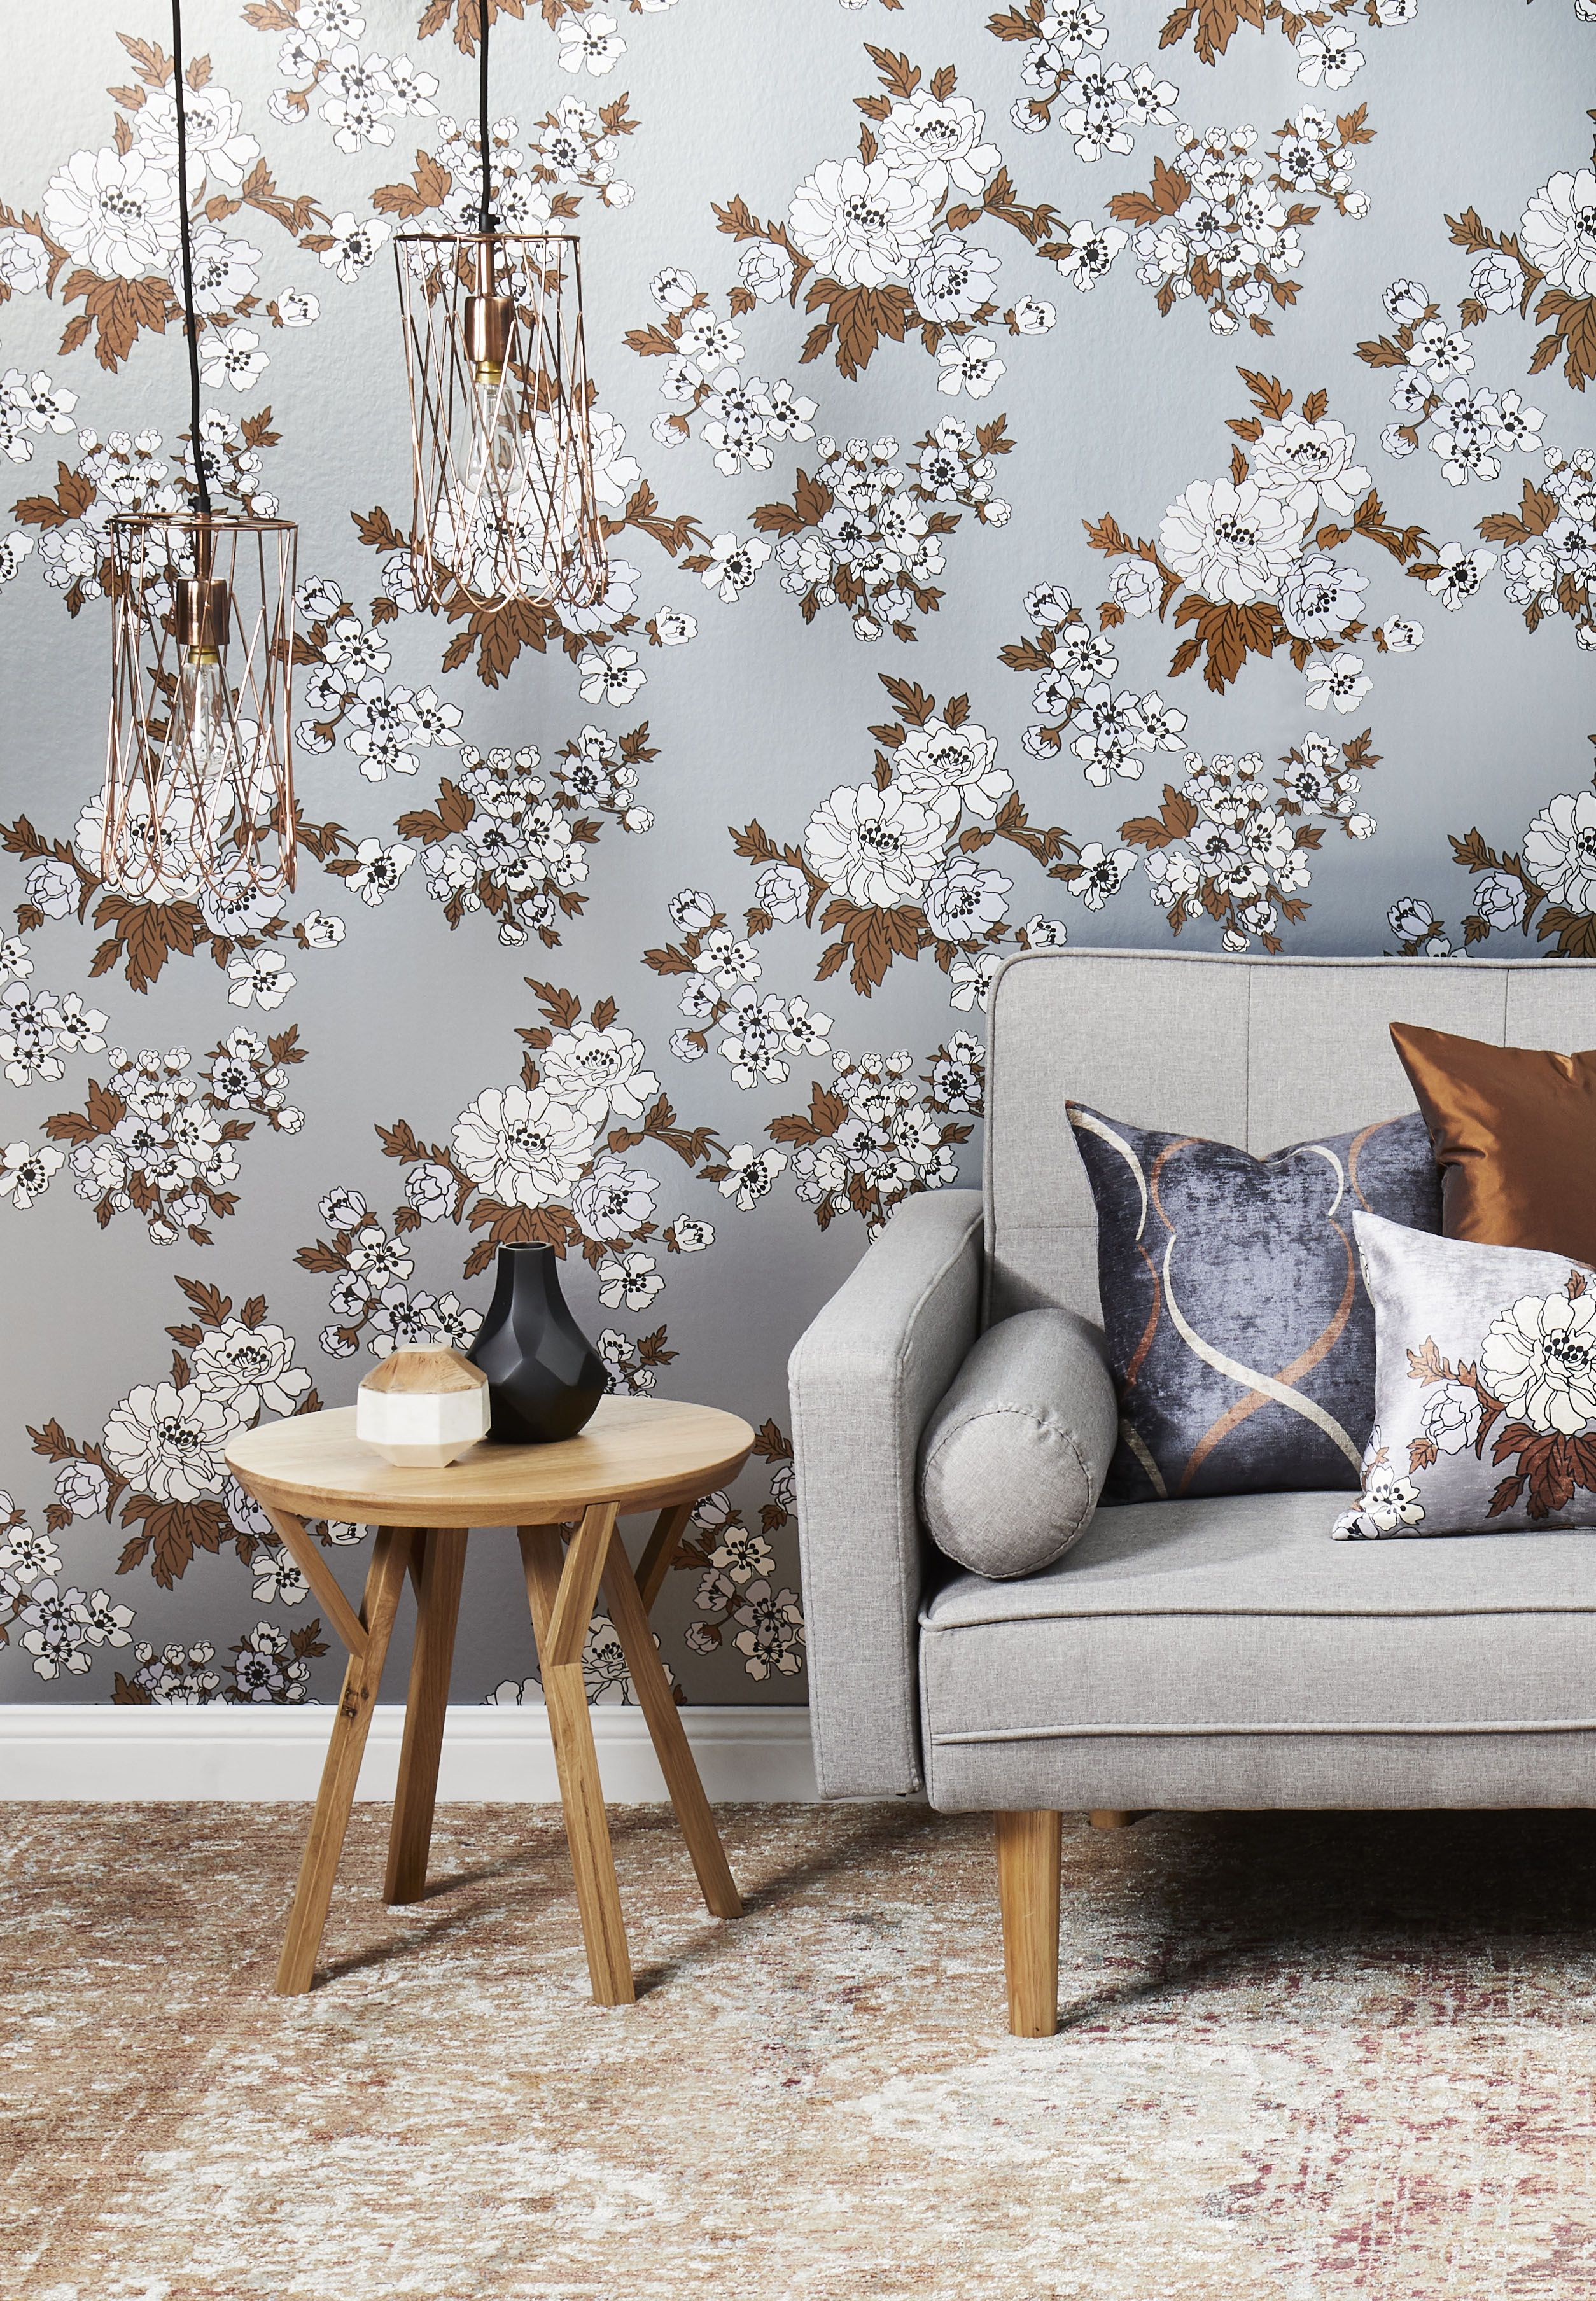 Our New Florence Broadhurst Wallpaper Collection